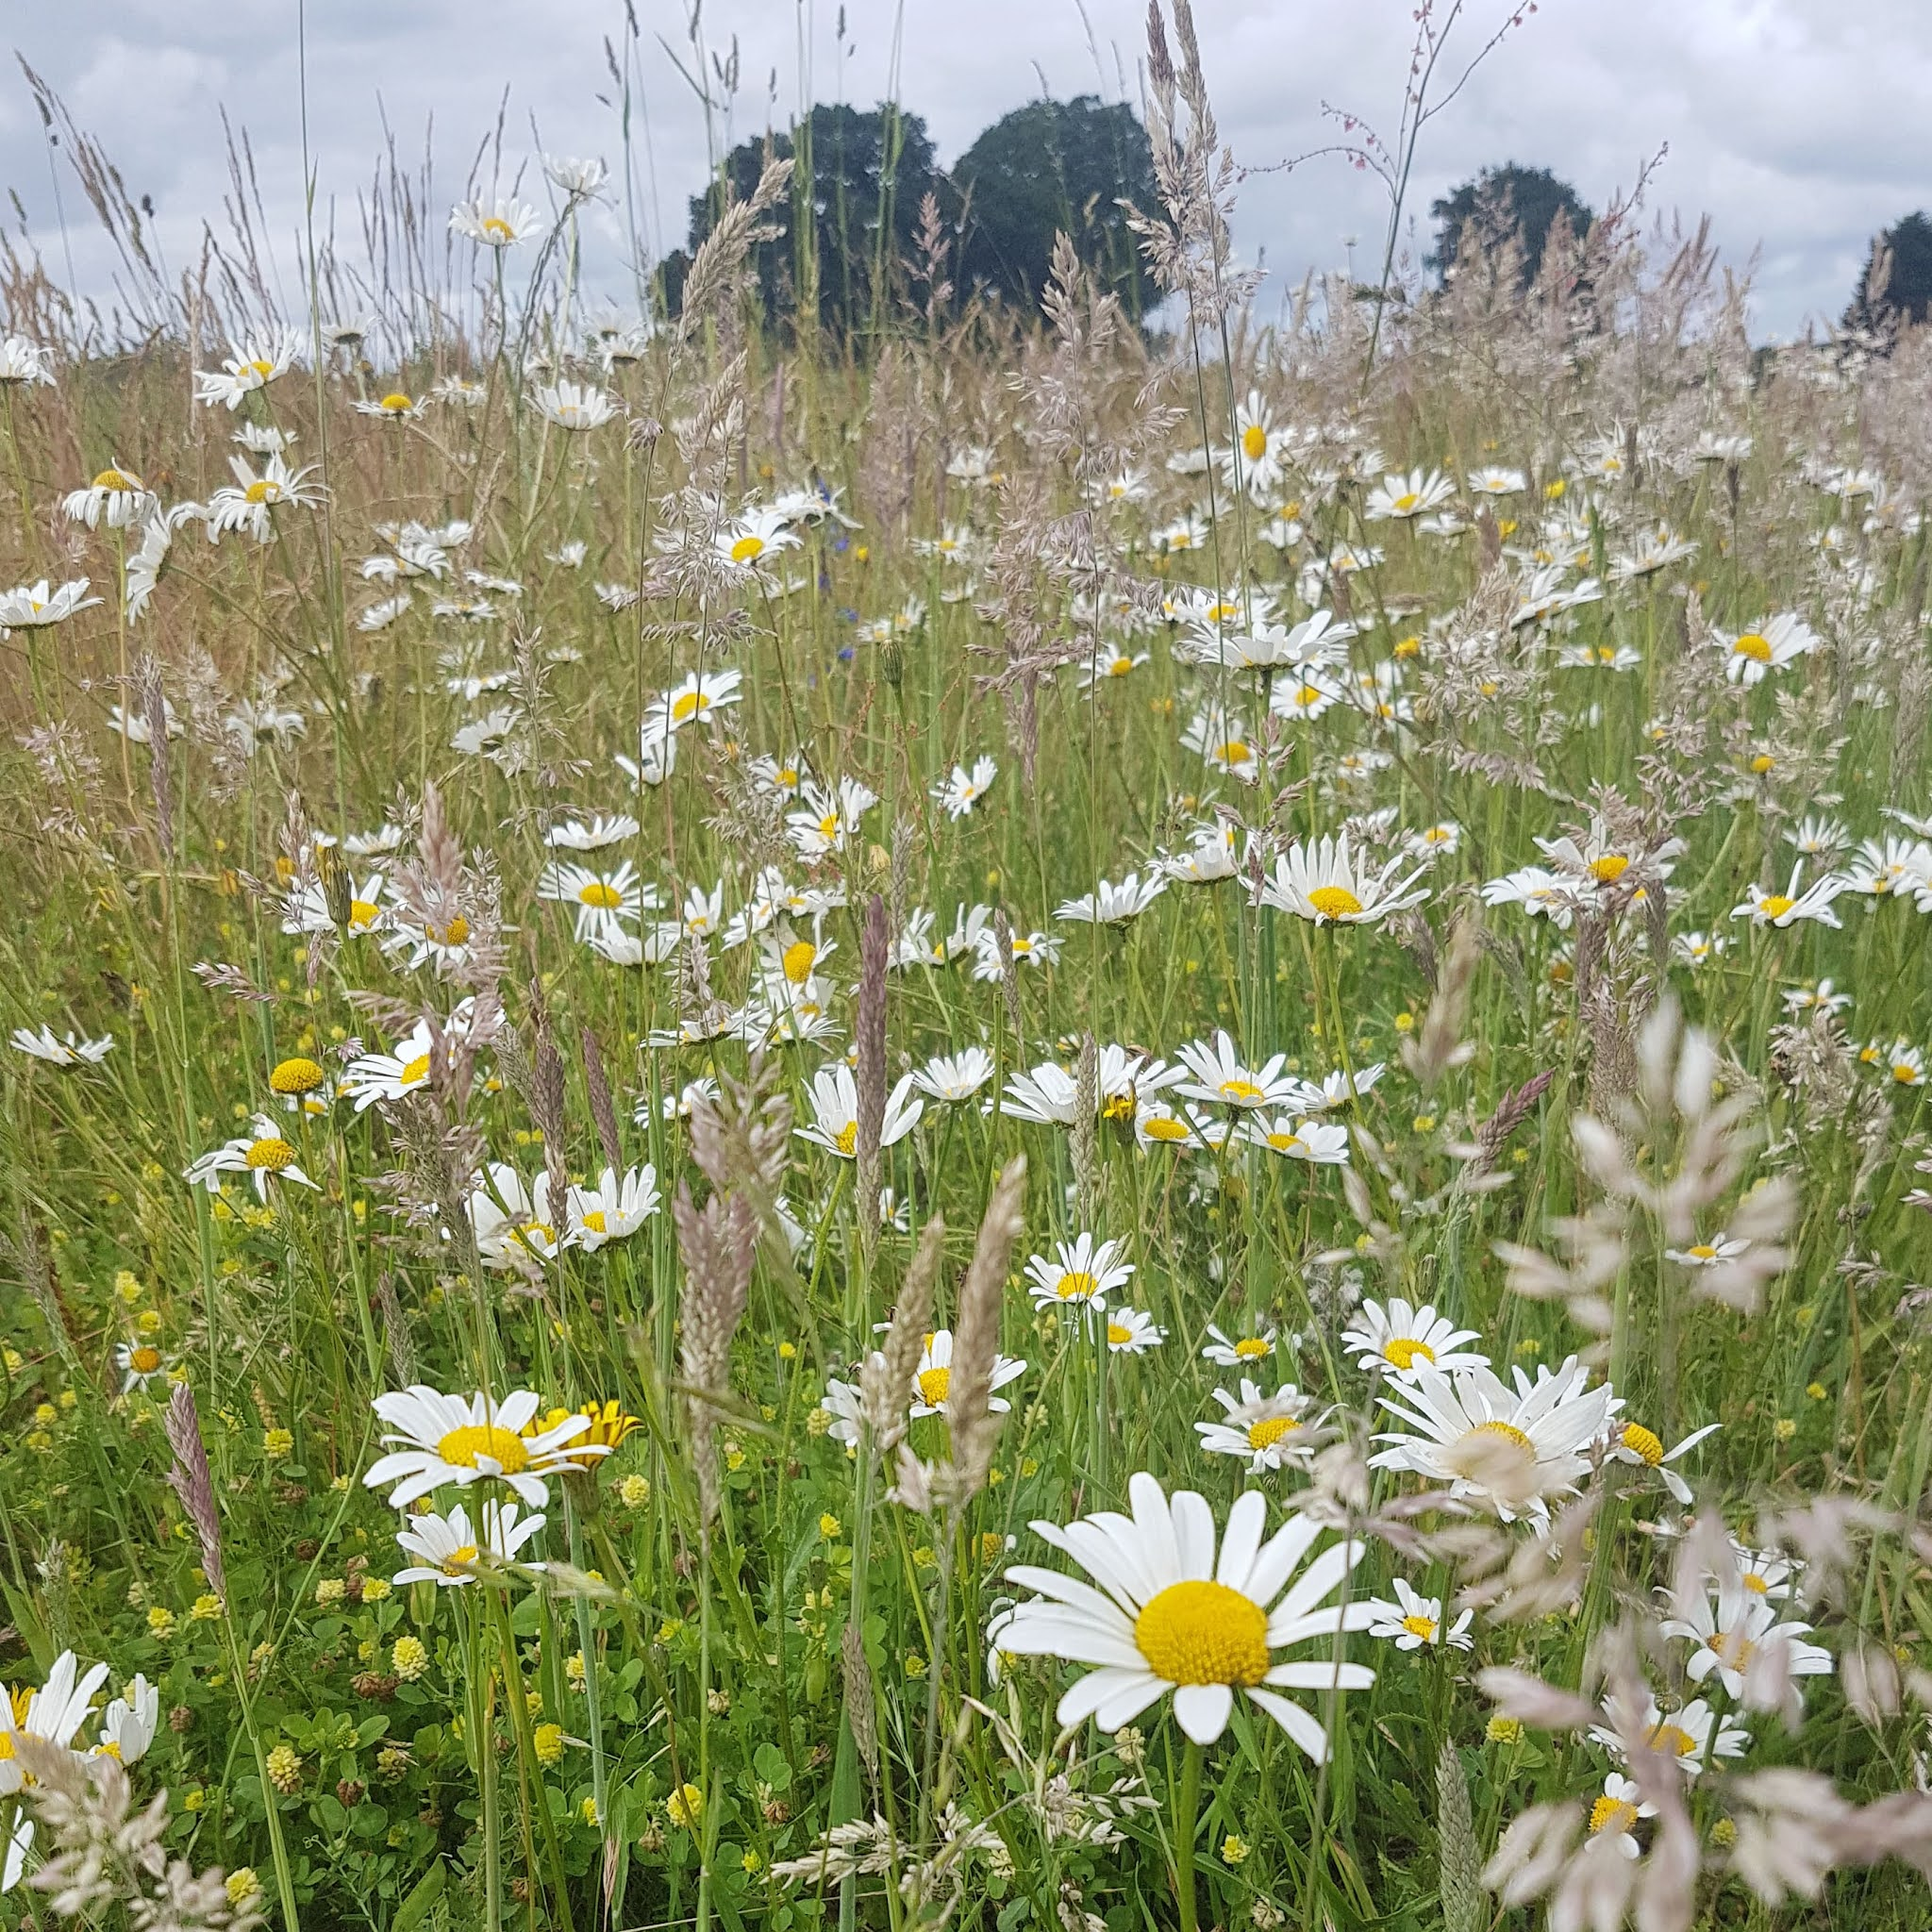 field of British wildflowers with daisies